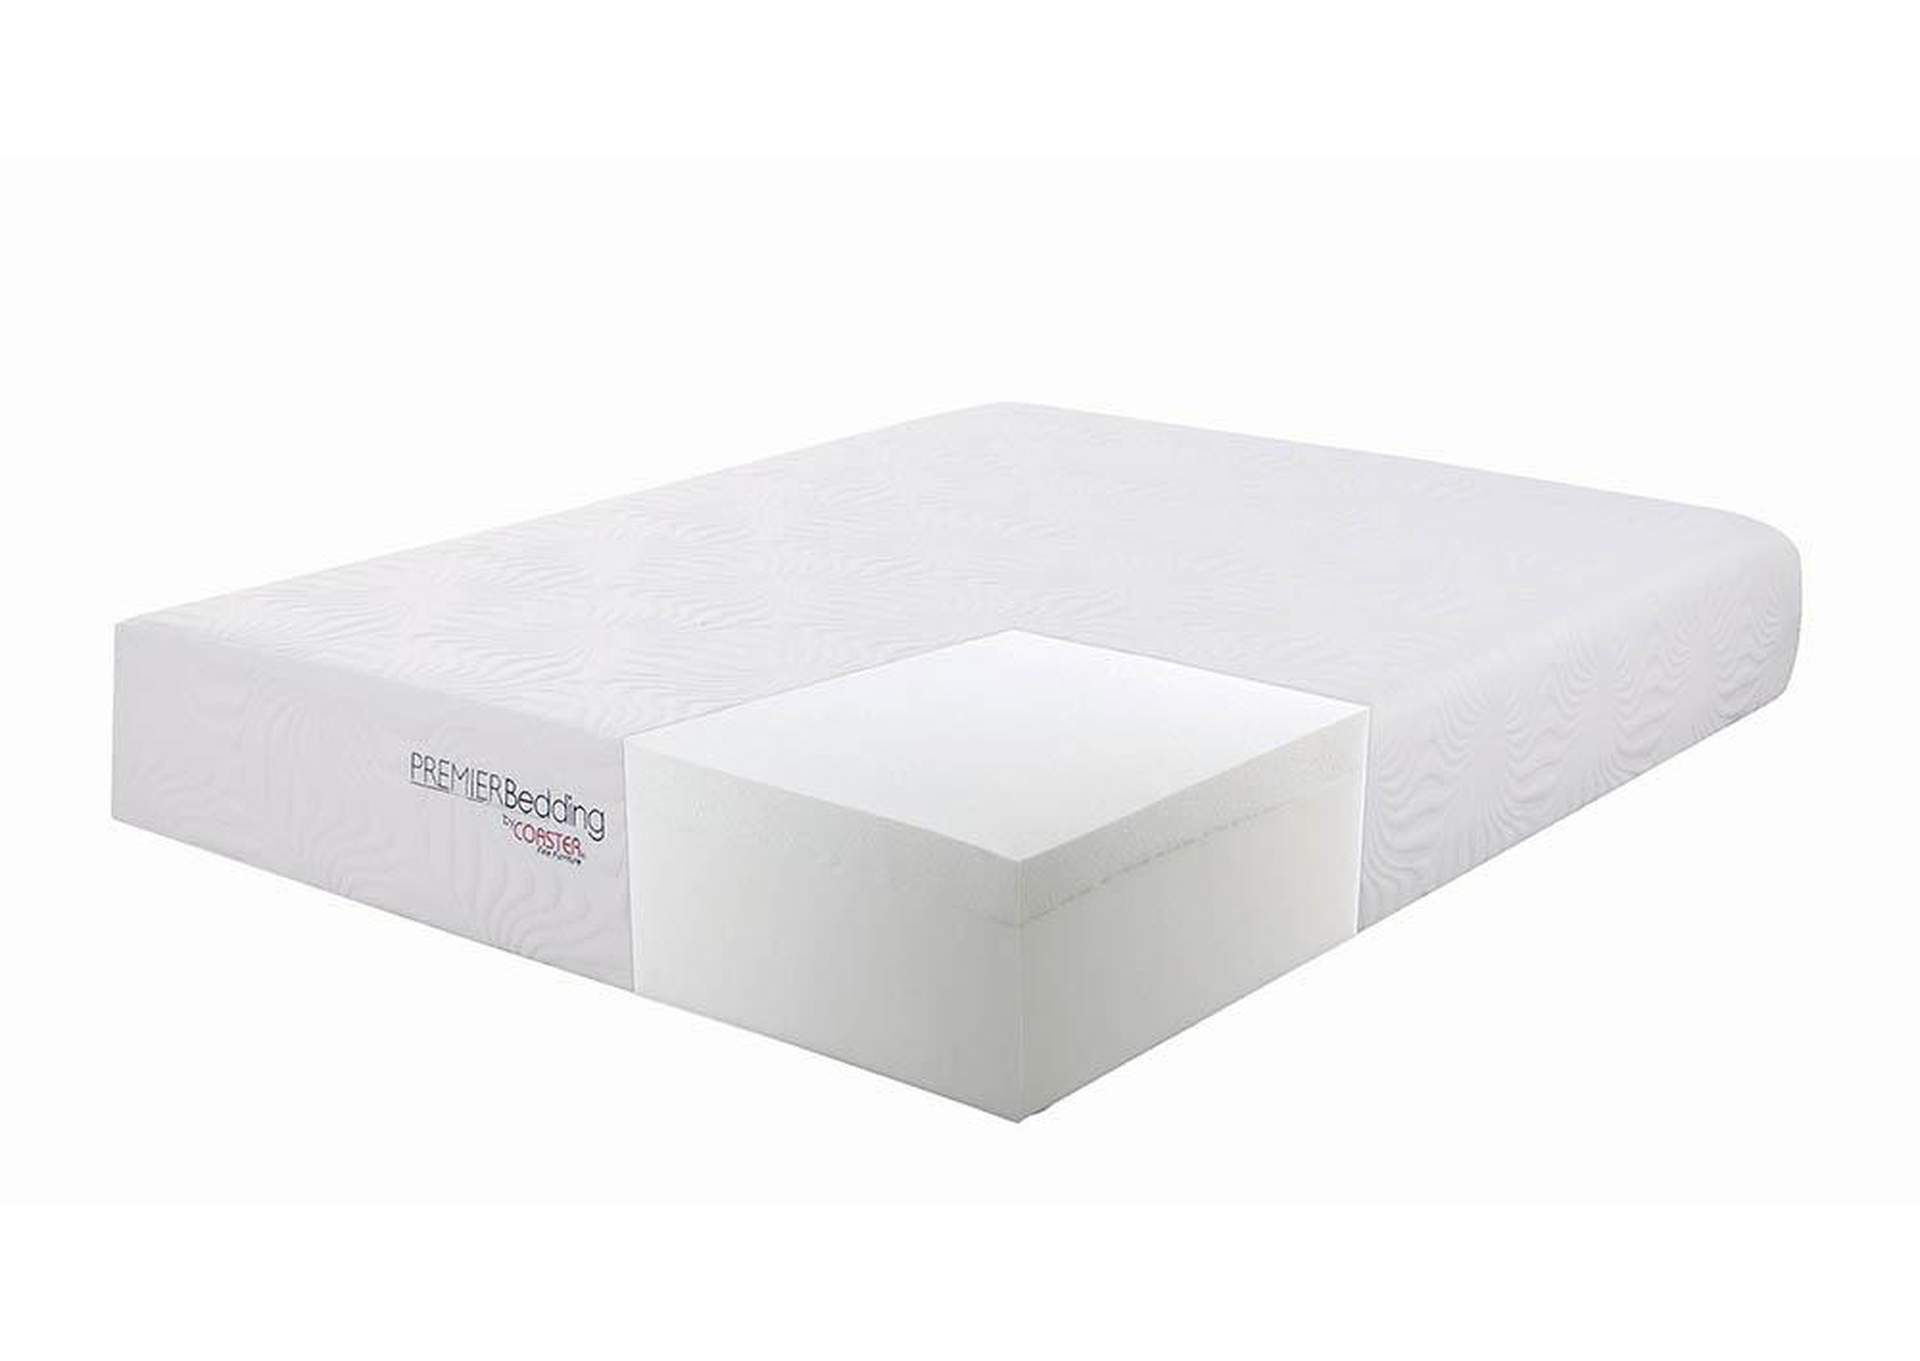 Ian 12 Inch Eastern King Memory Foam Mattress,Coaster Furniture